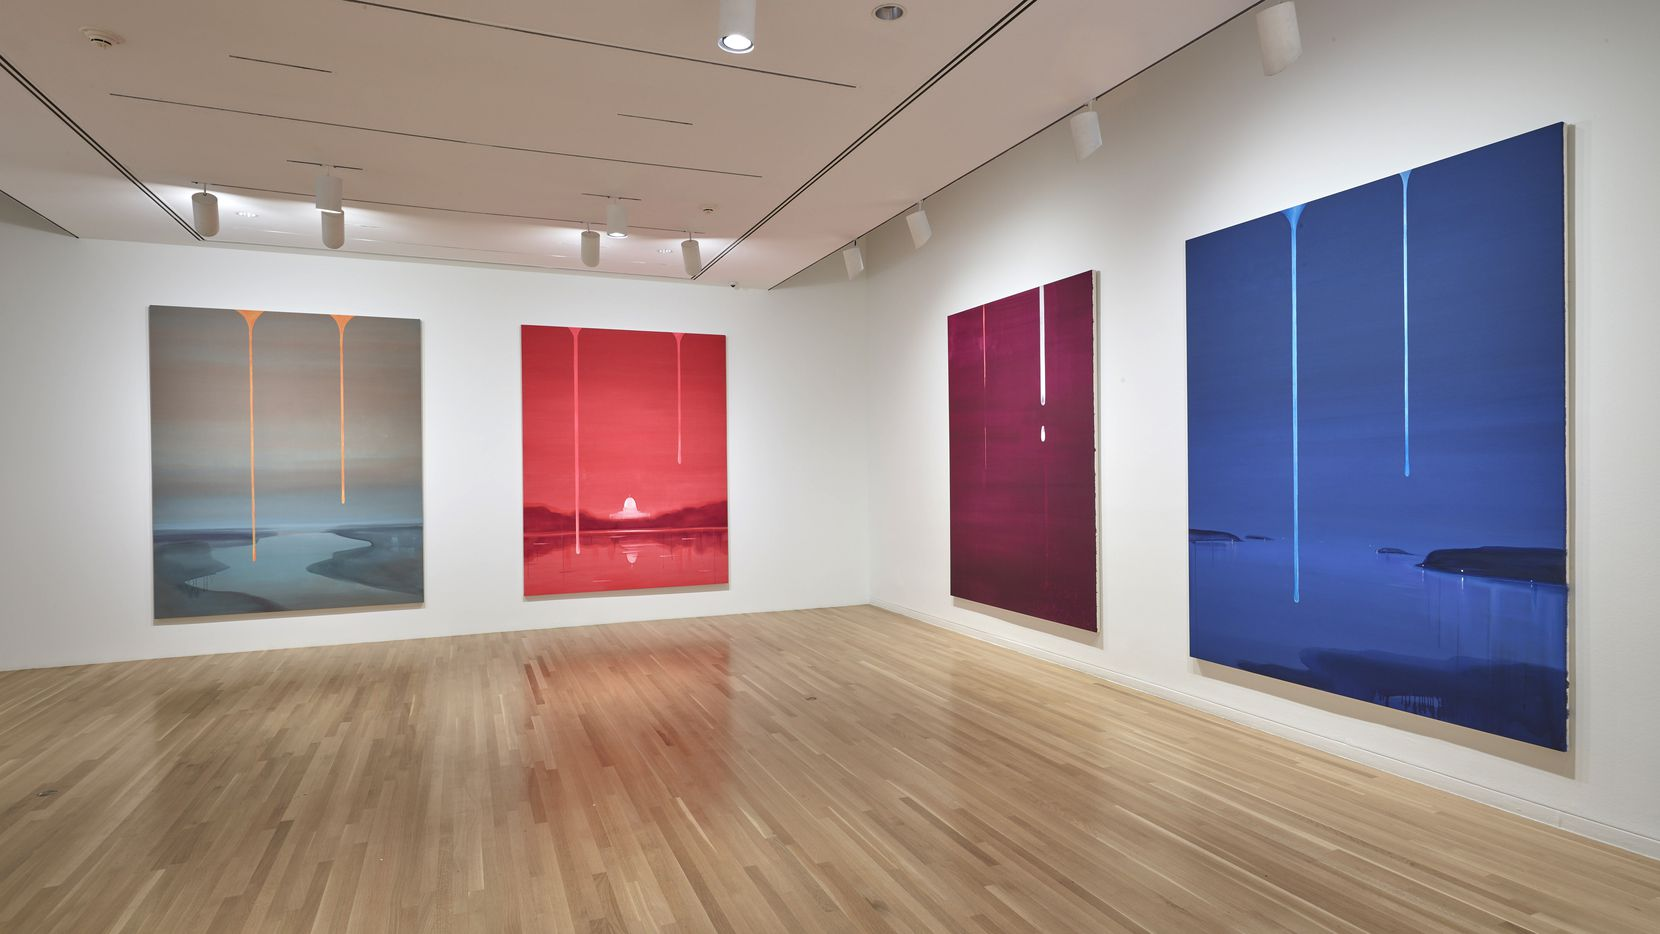 Wanda Koop painted all the works in her new Dallas Museum of Art exhibition especially for the occasion.